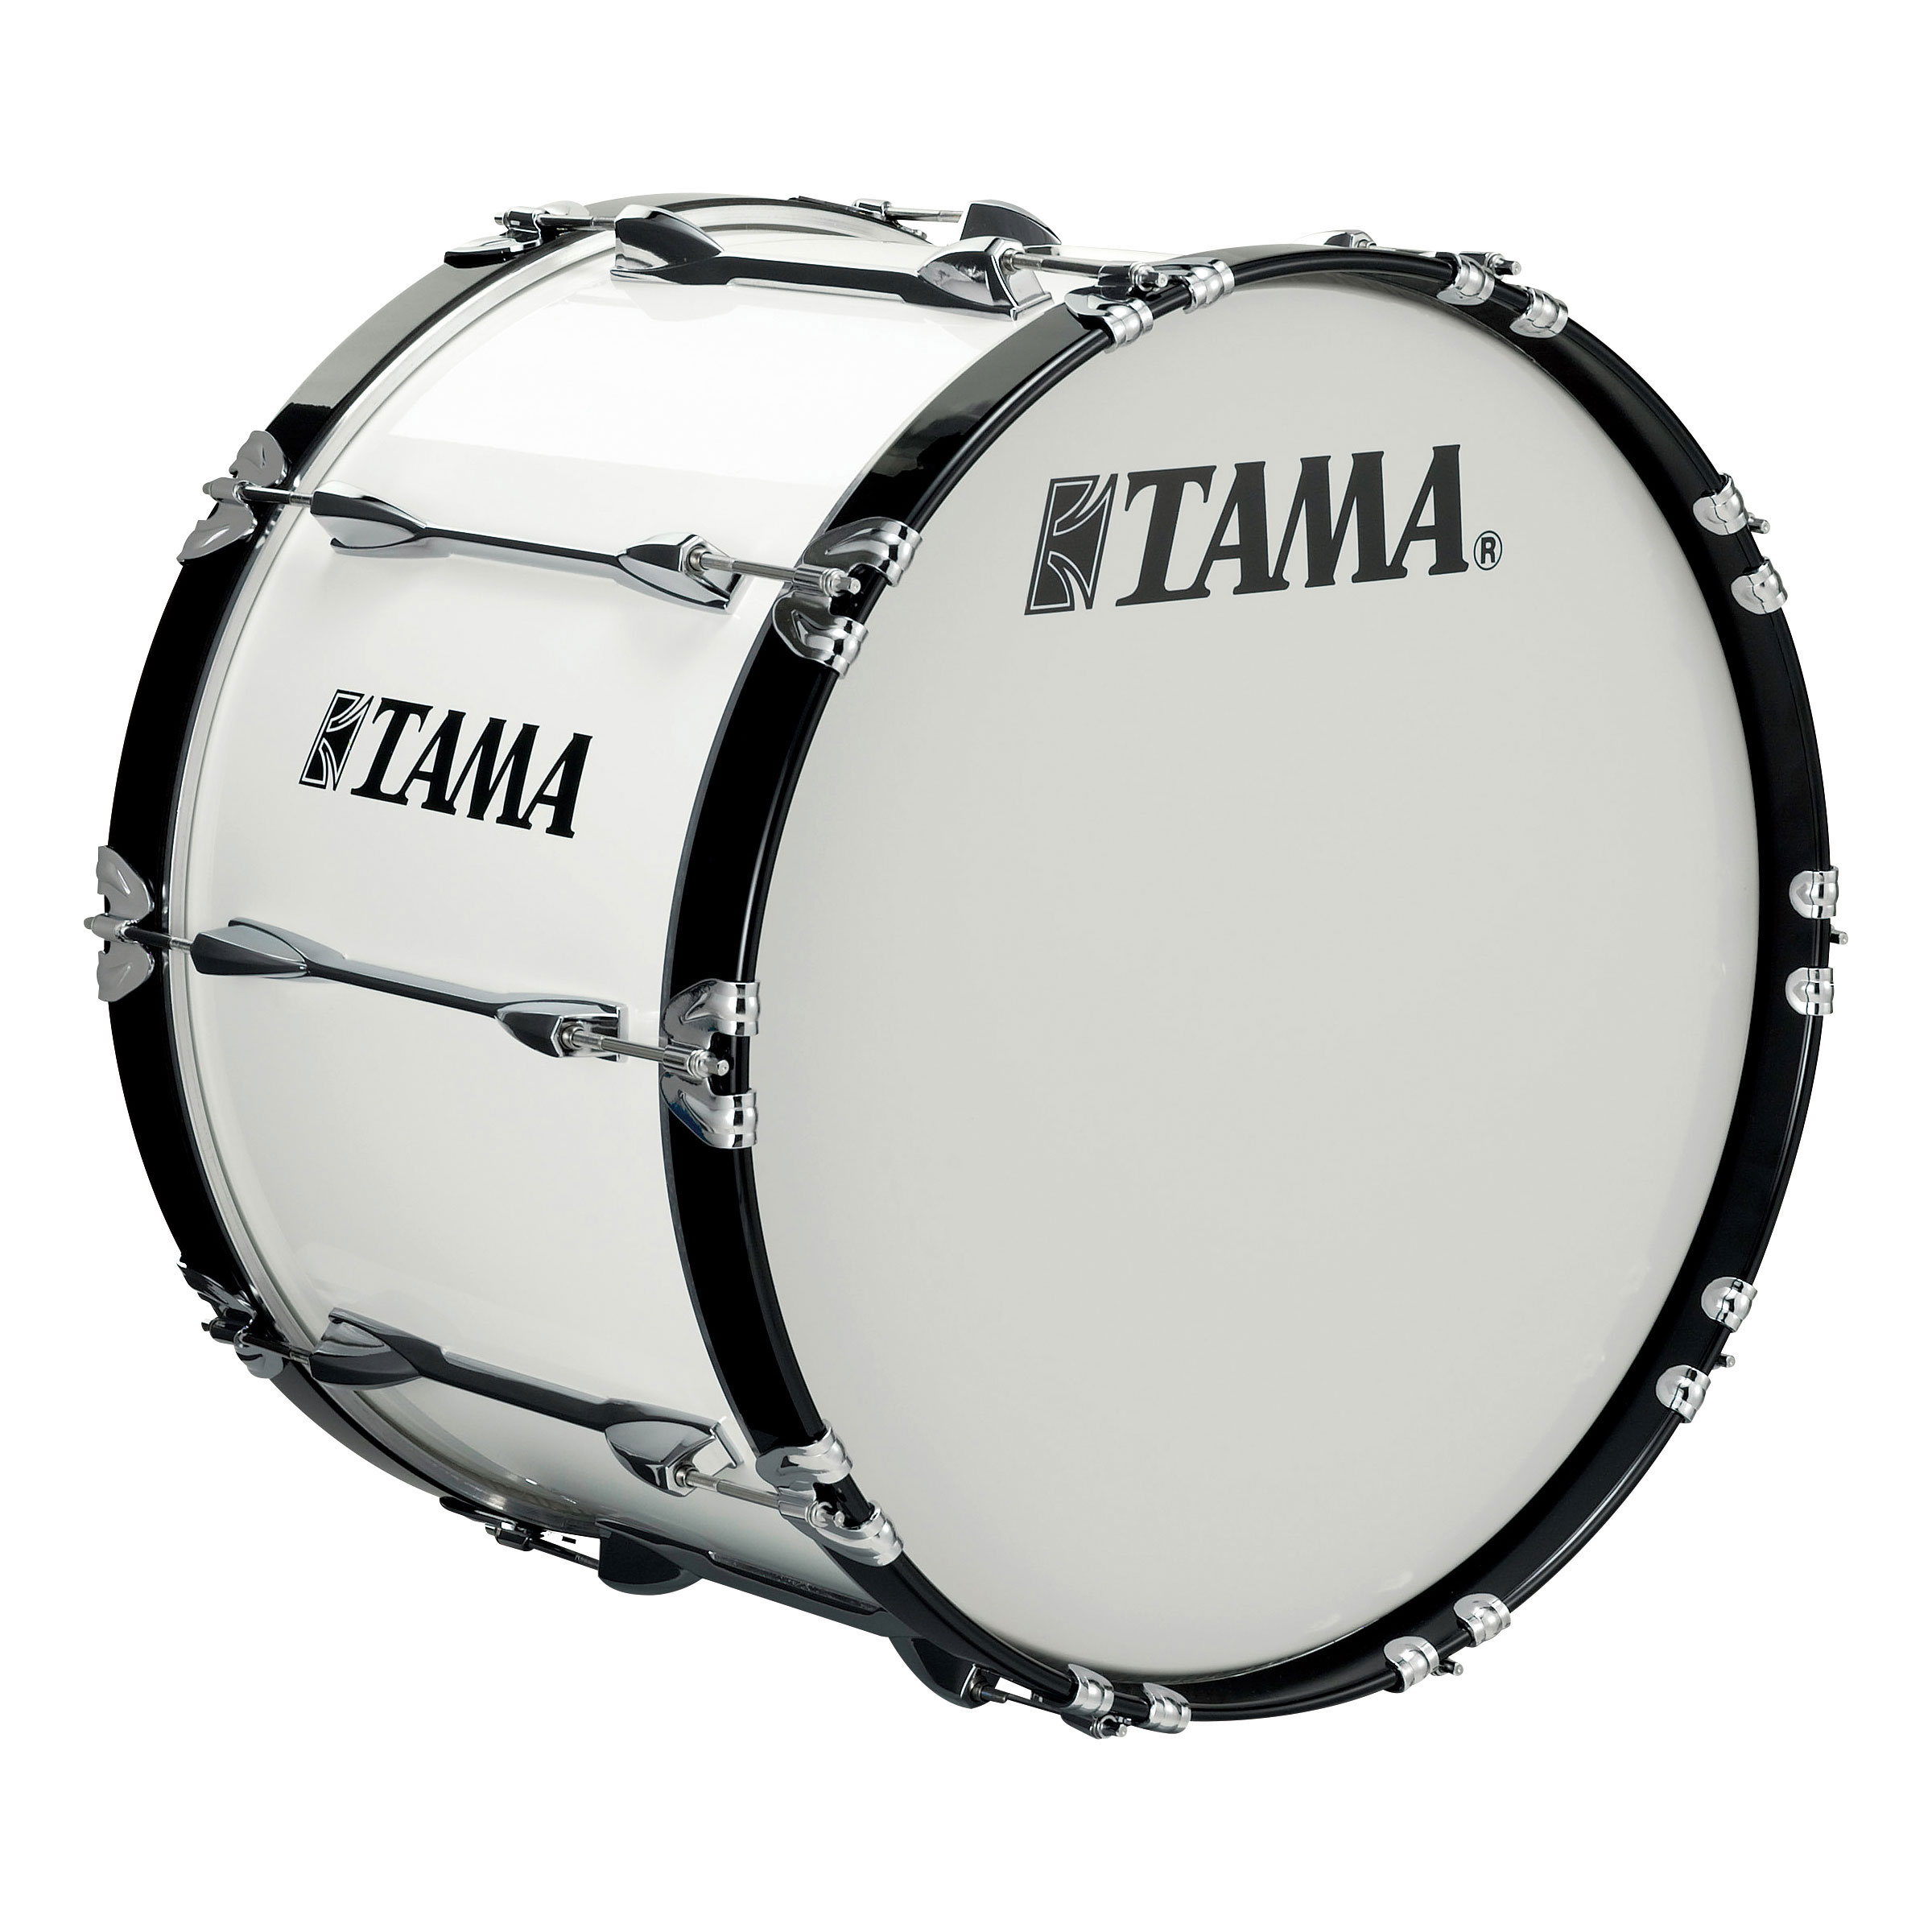 "Tama 28"" StarLight Marching Bass Drum in Sugar White Wrap"